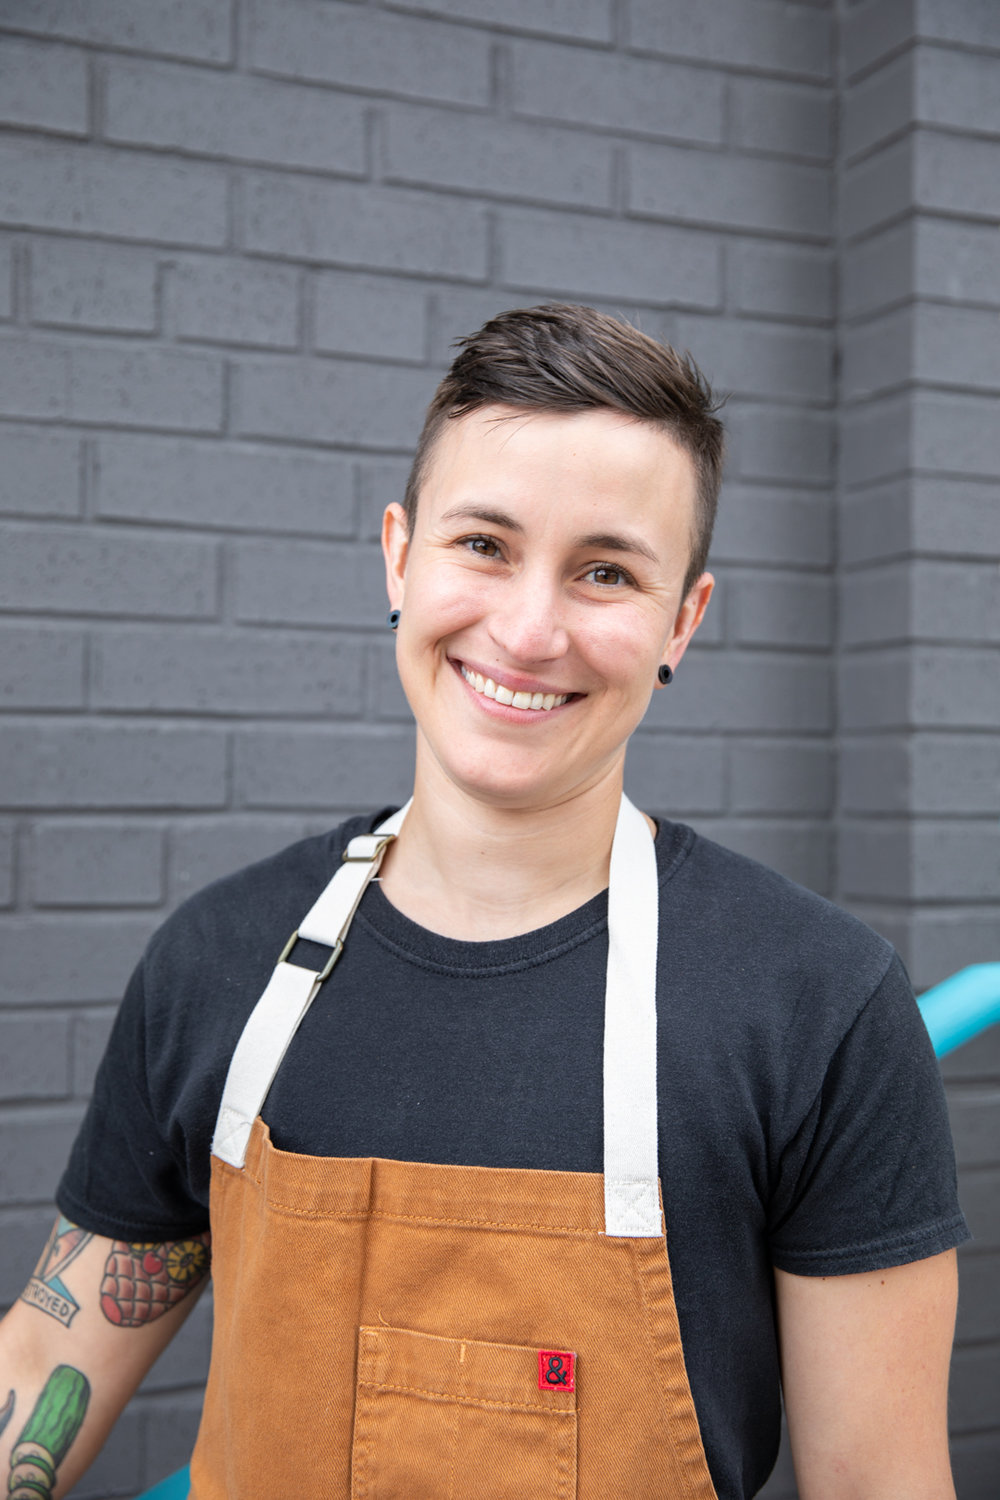 Chef+Leah+Korger+_+Quincy+Street+Kitchen-6.jpg